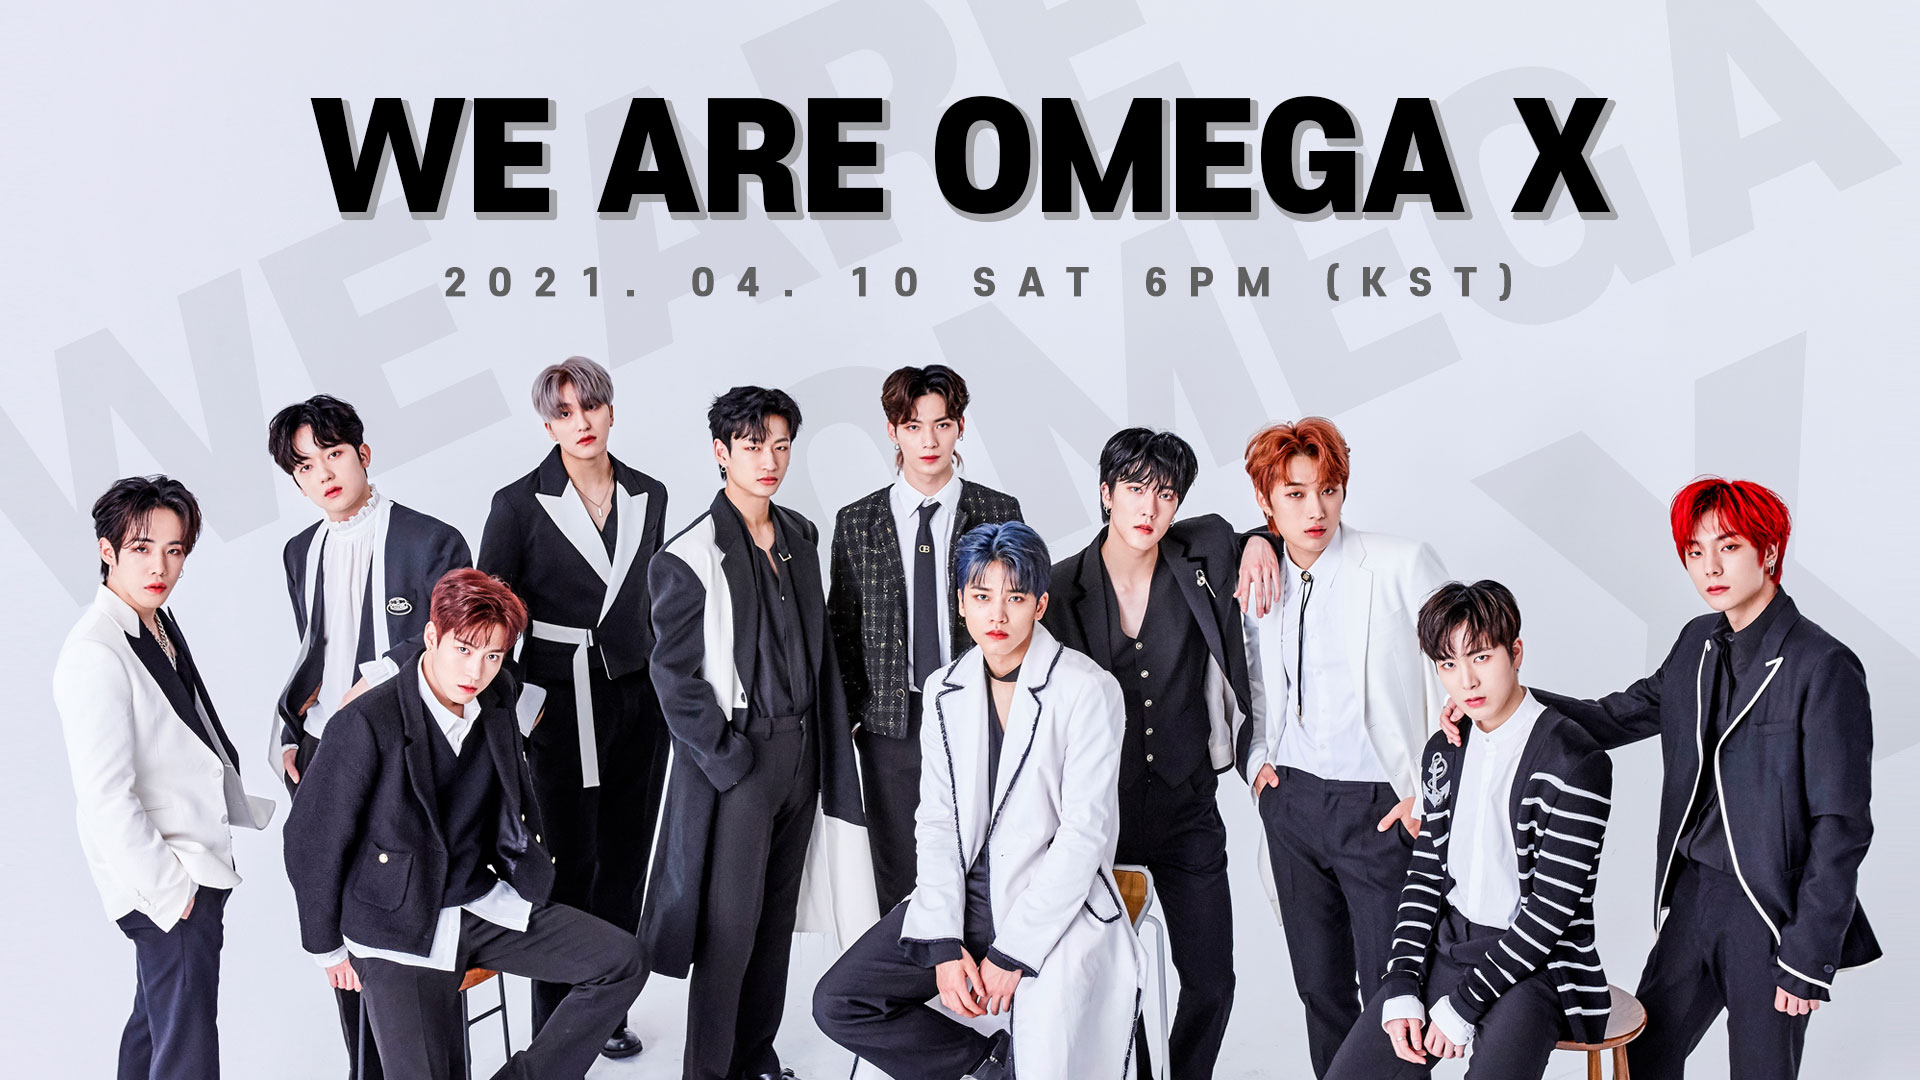 ✨WE ARE OMEGA X✨